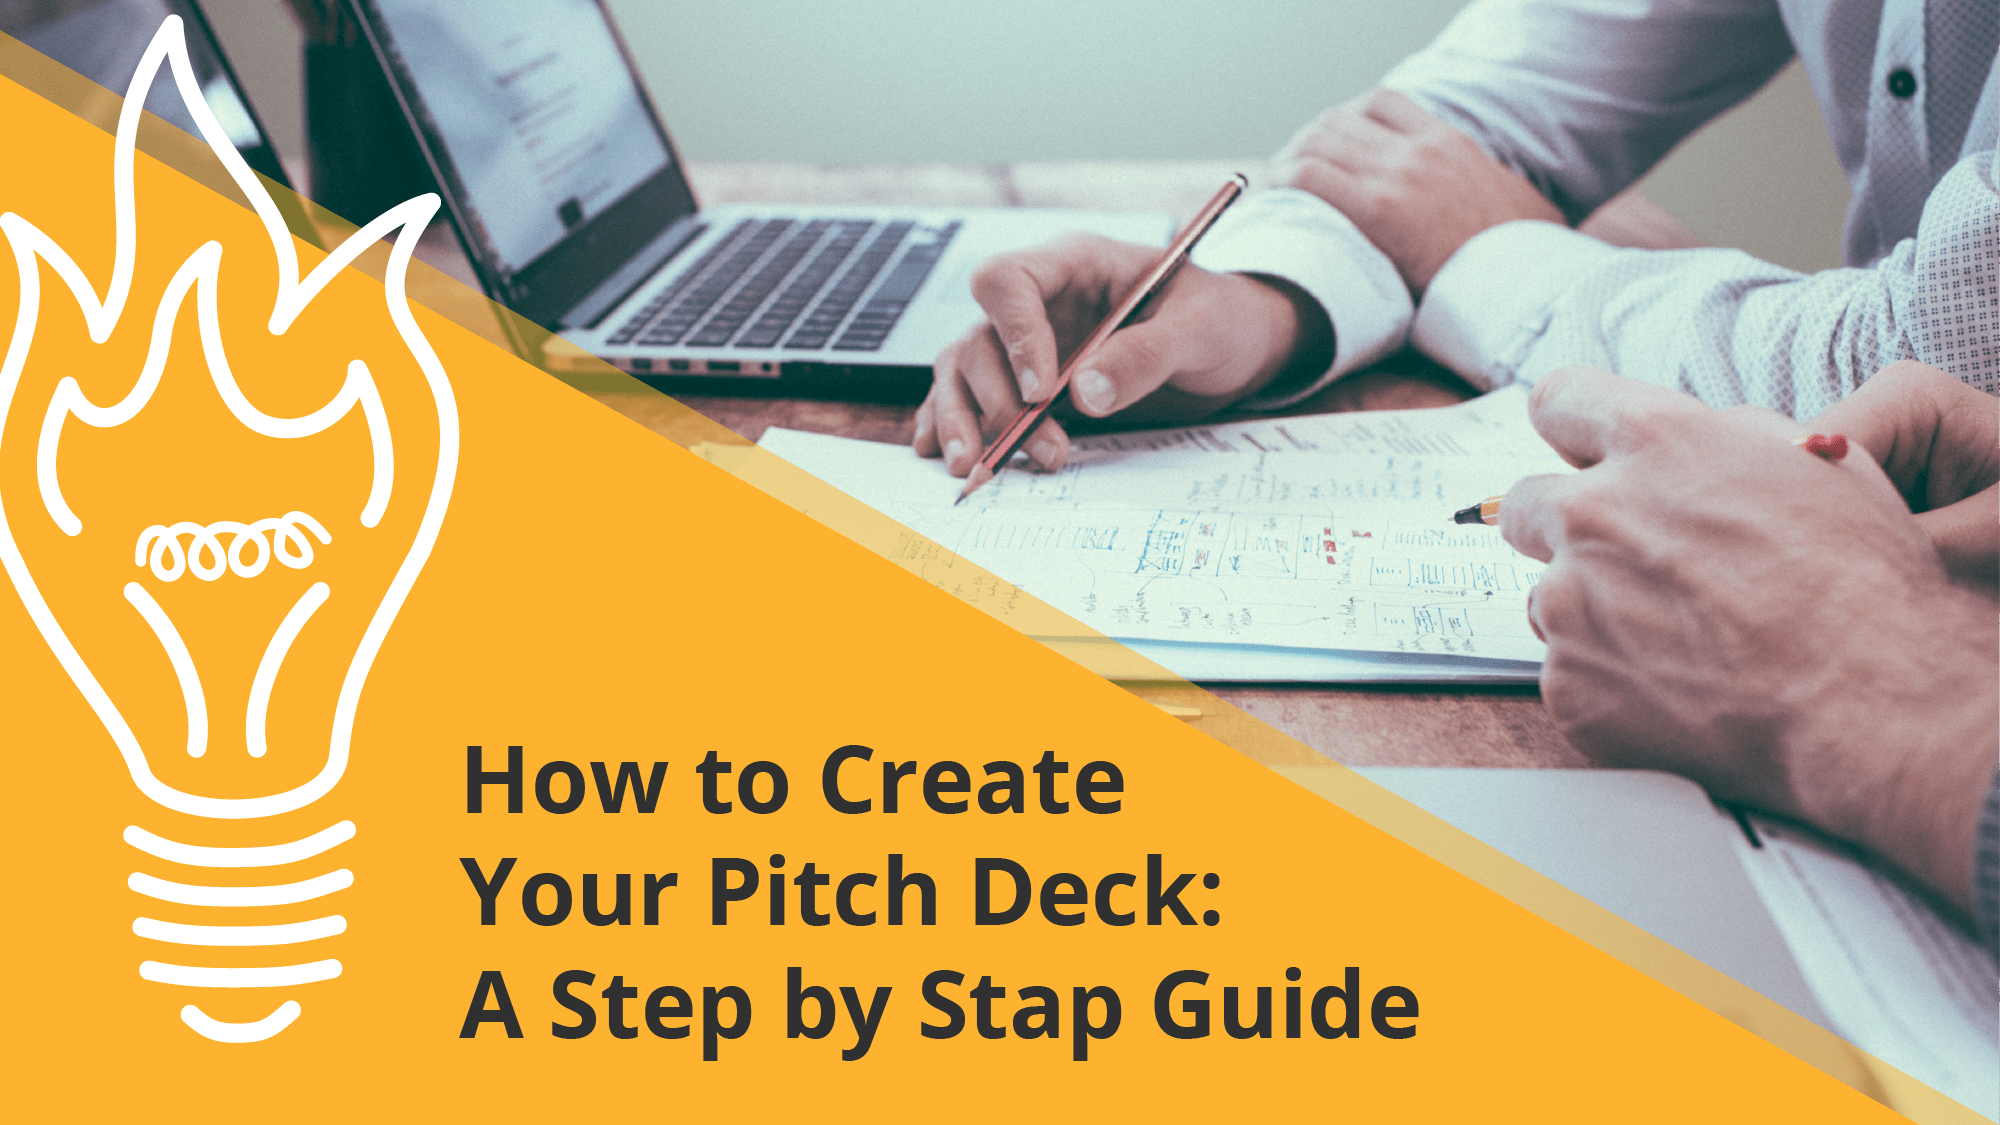 How to create a pitch deck